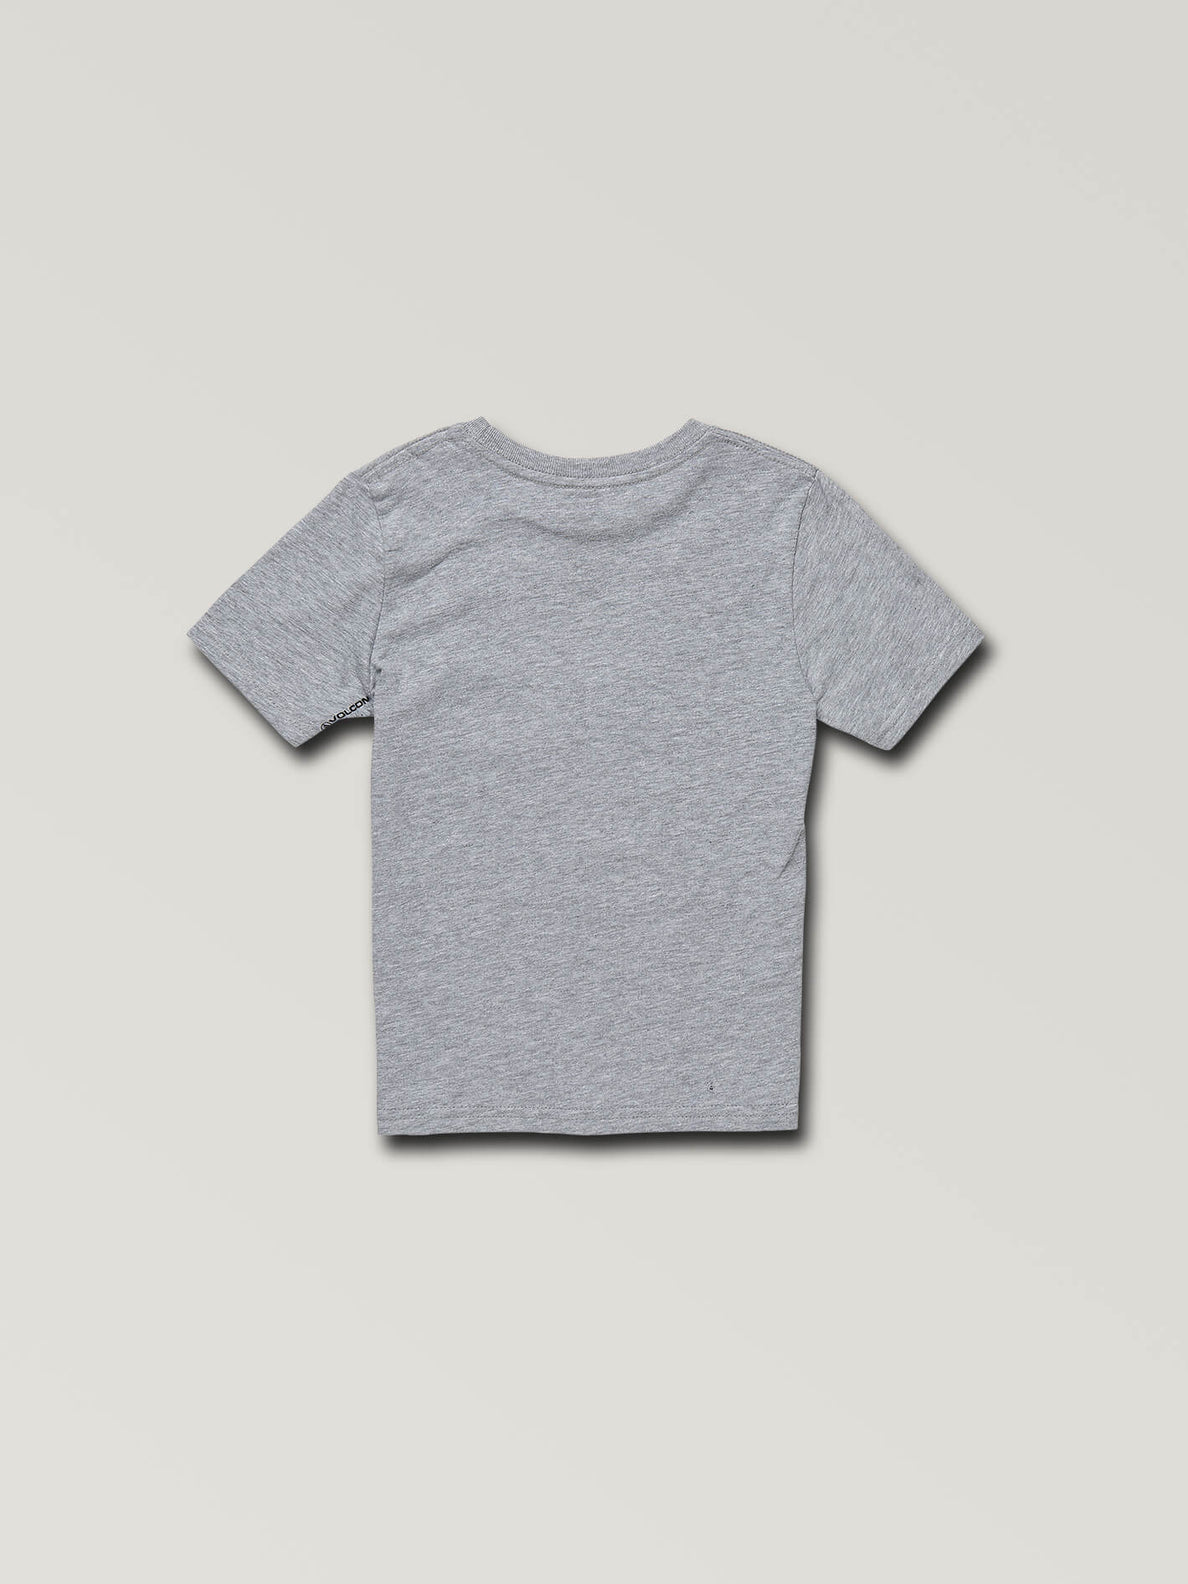 Little Boys Stone Eyes Short Sleeve Tee In Heather Grey, Back View